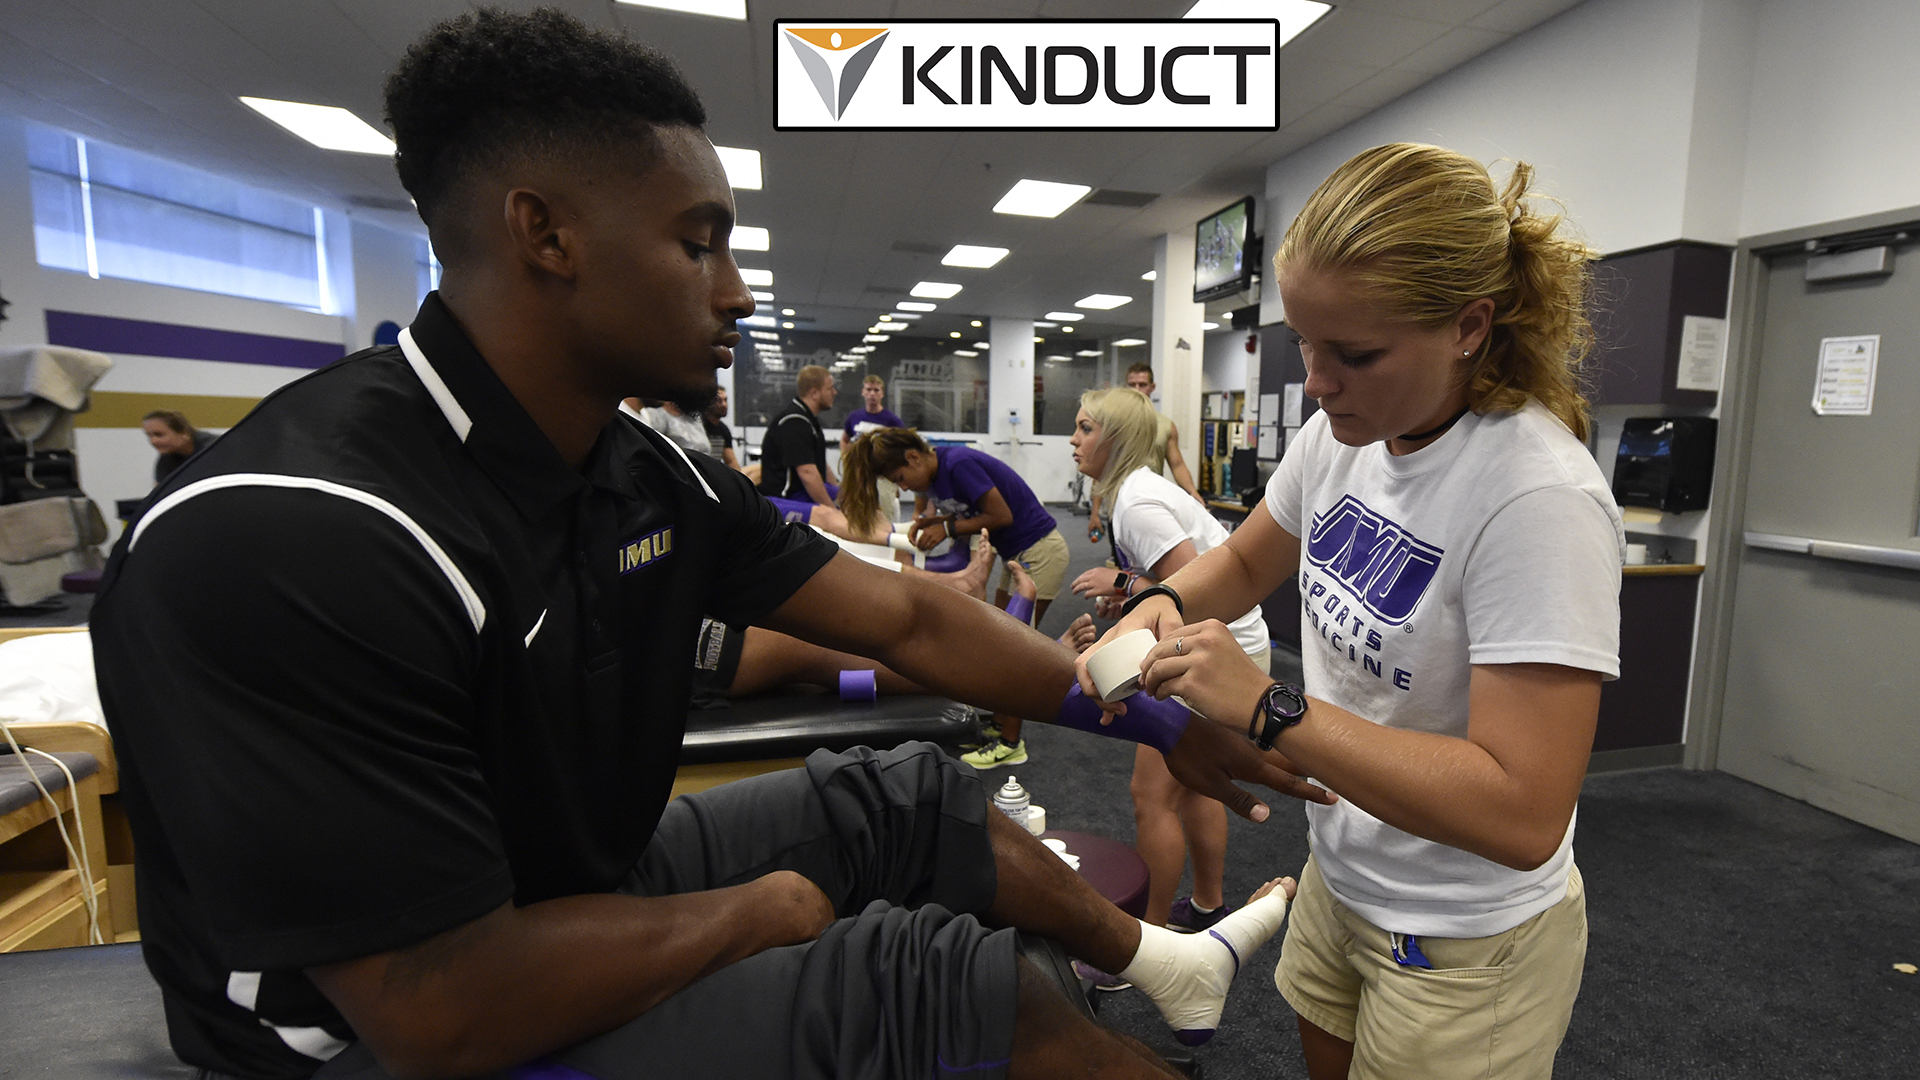 Sports Medicine: James Madison Partners with Kinduct to Improve Student-Athlete Performance)